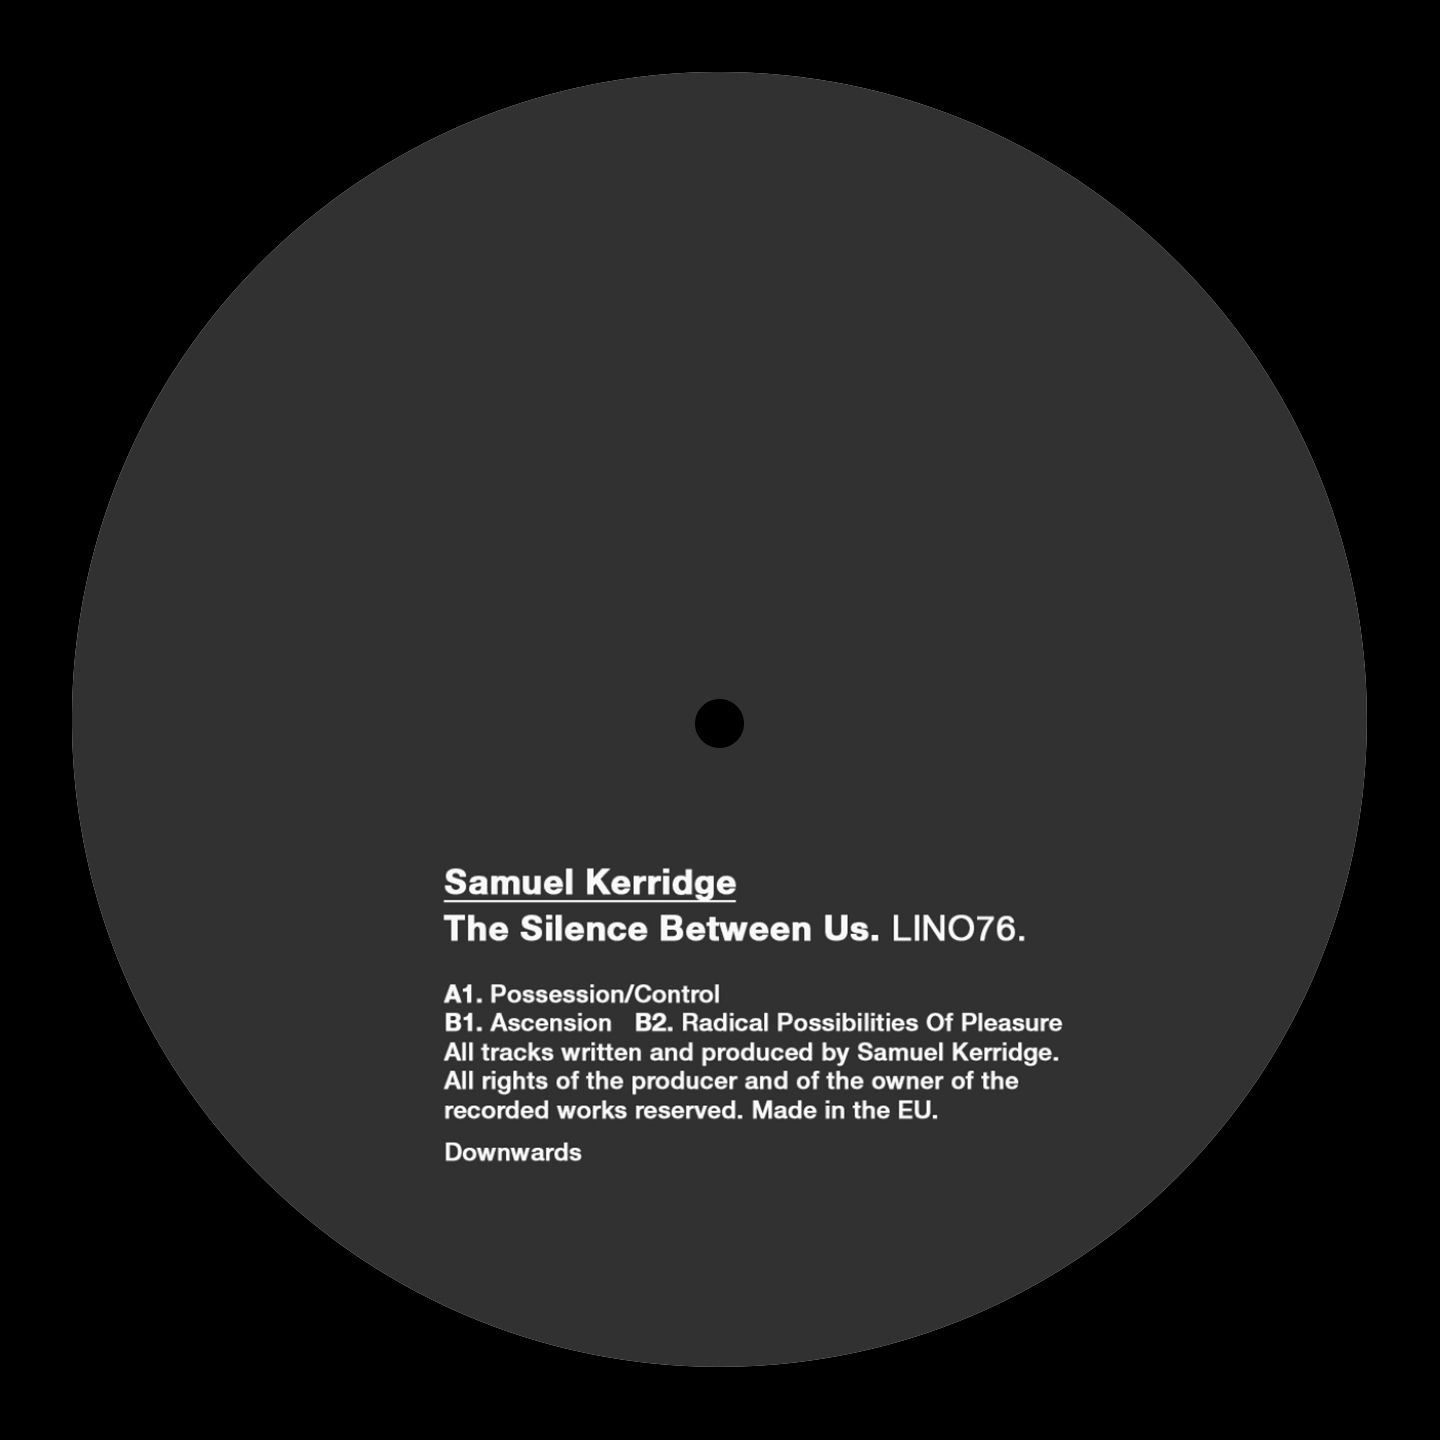 Samuel Kerridge - Possession/Control